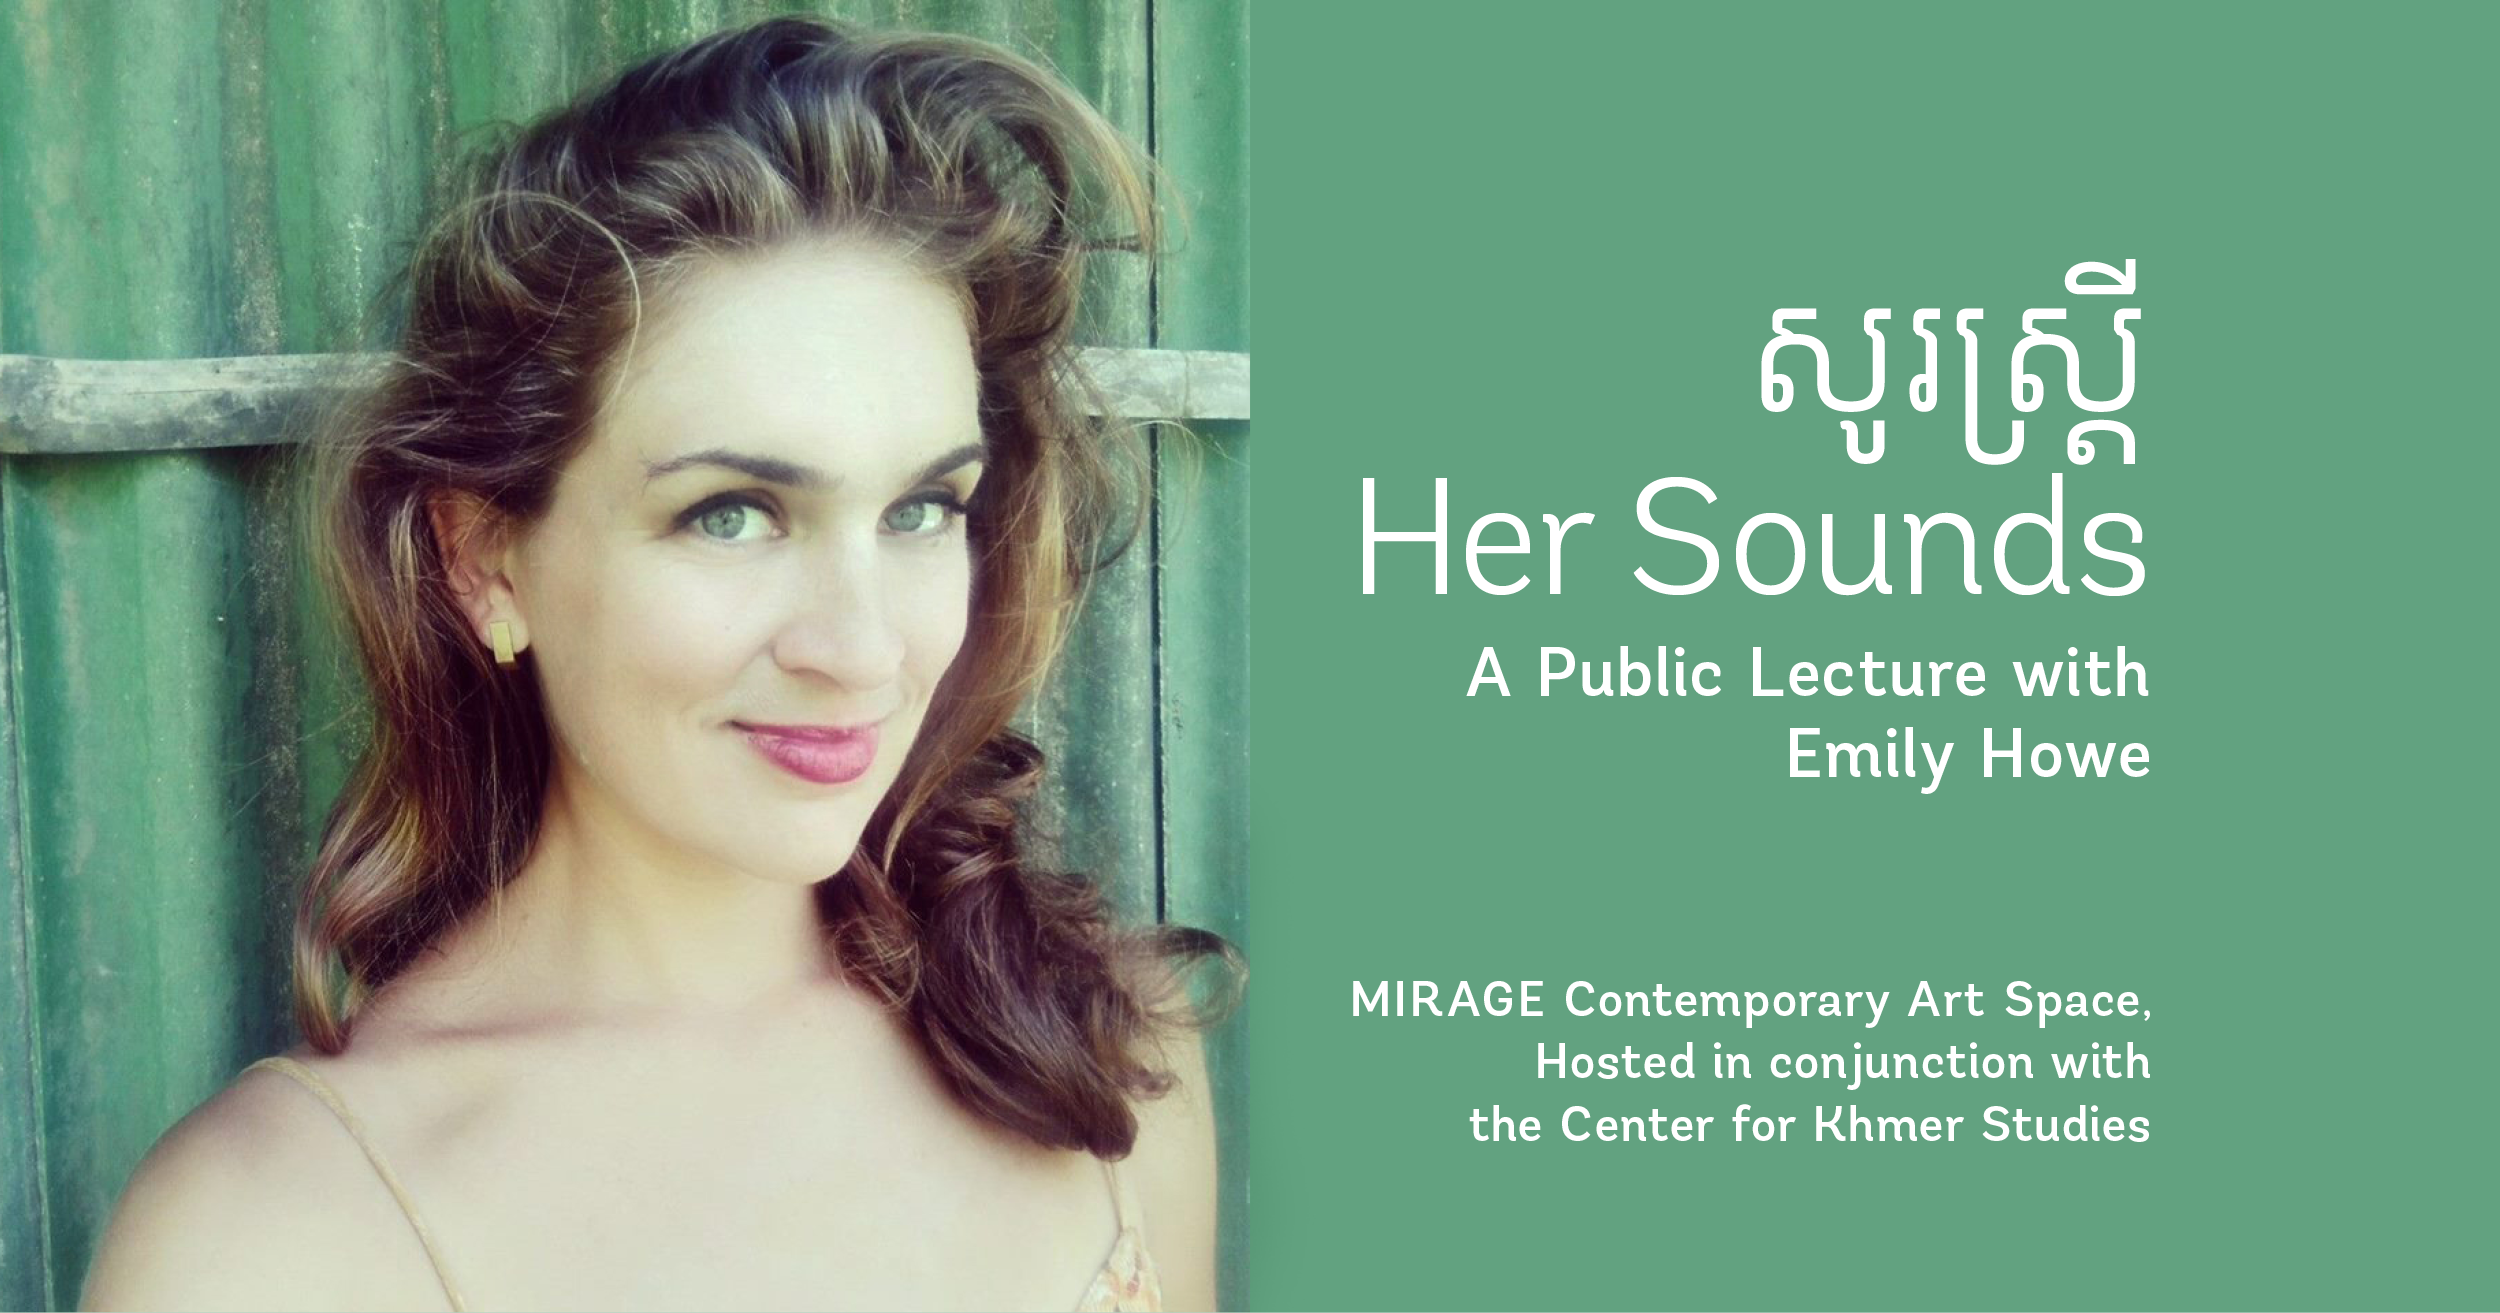 Public Lecture with Emily Howe at MIRAGE Contemporary Art Space in Siem Reap, Cambodia